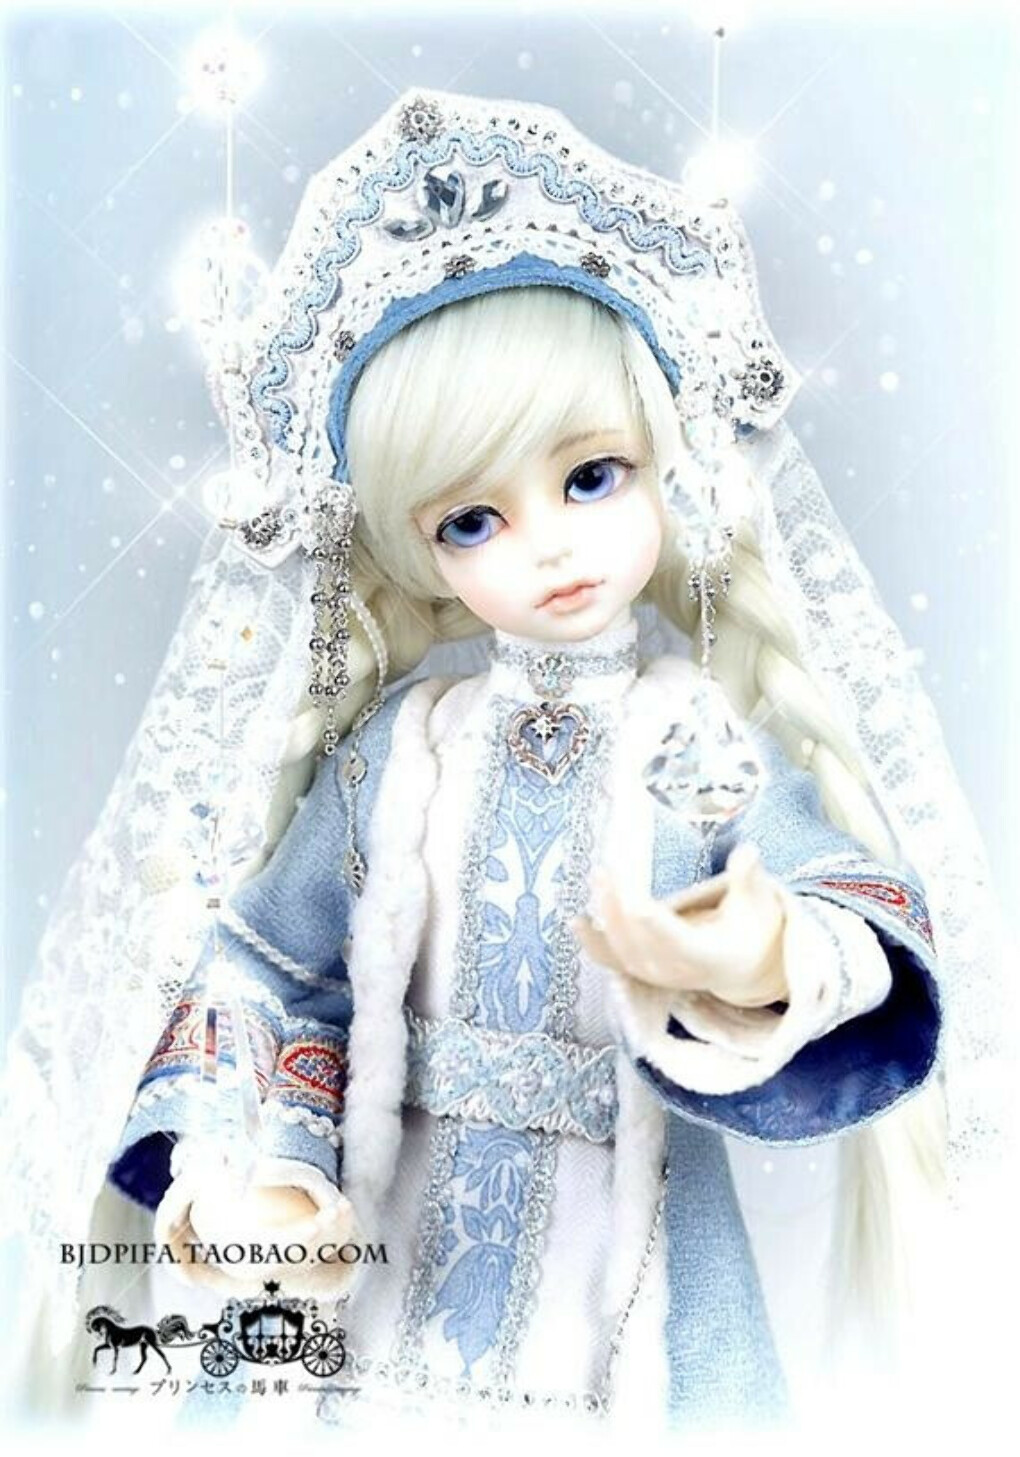 1/4th 42cm  BJD doll nude with face Make up,Dress up. SD doll girl North & Iceland .not included Apparel and wig купить на AliExpress